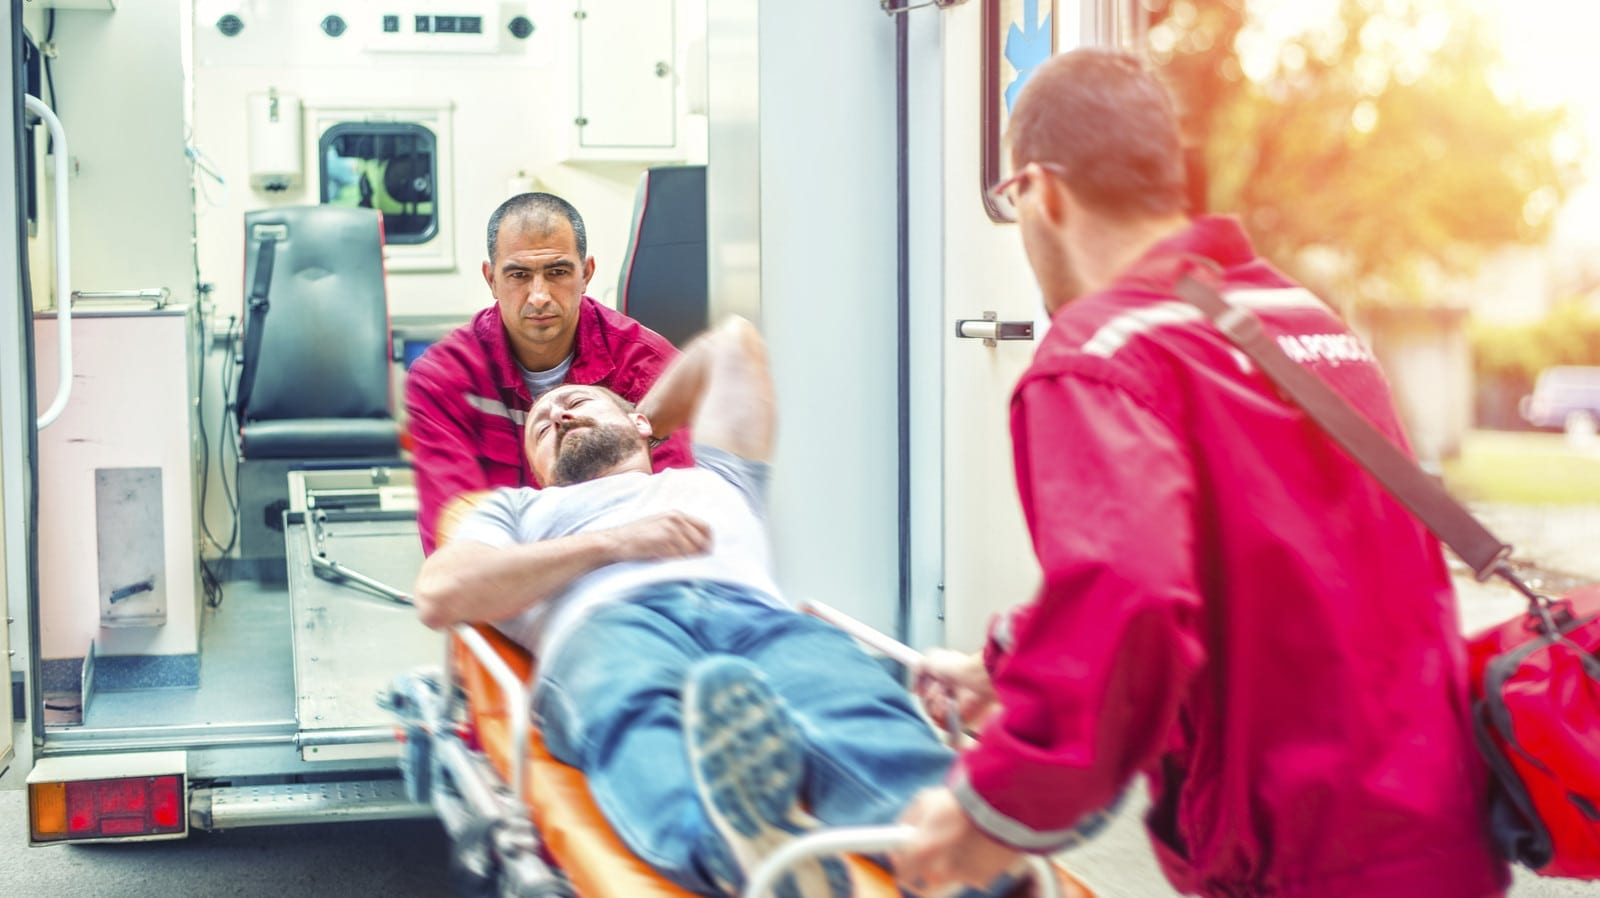 Paramedics Helping Patient On A Stretcher Stock Photo